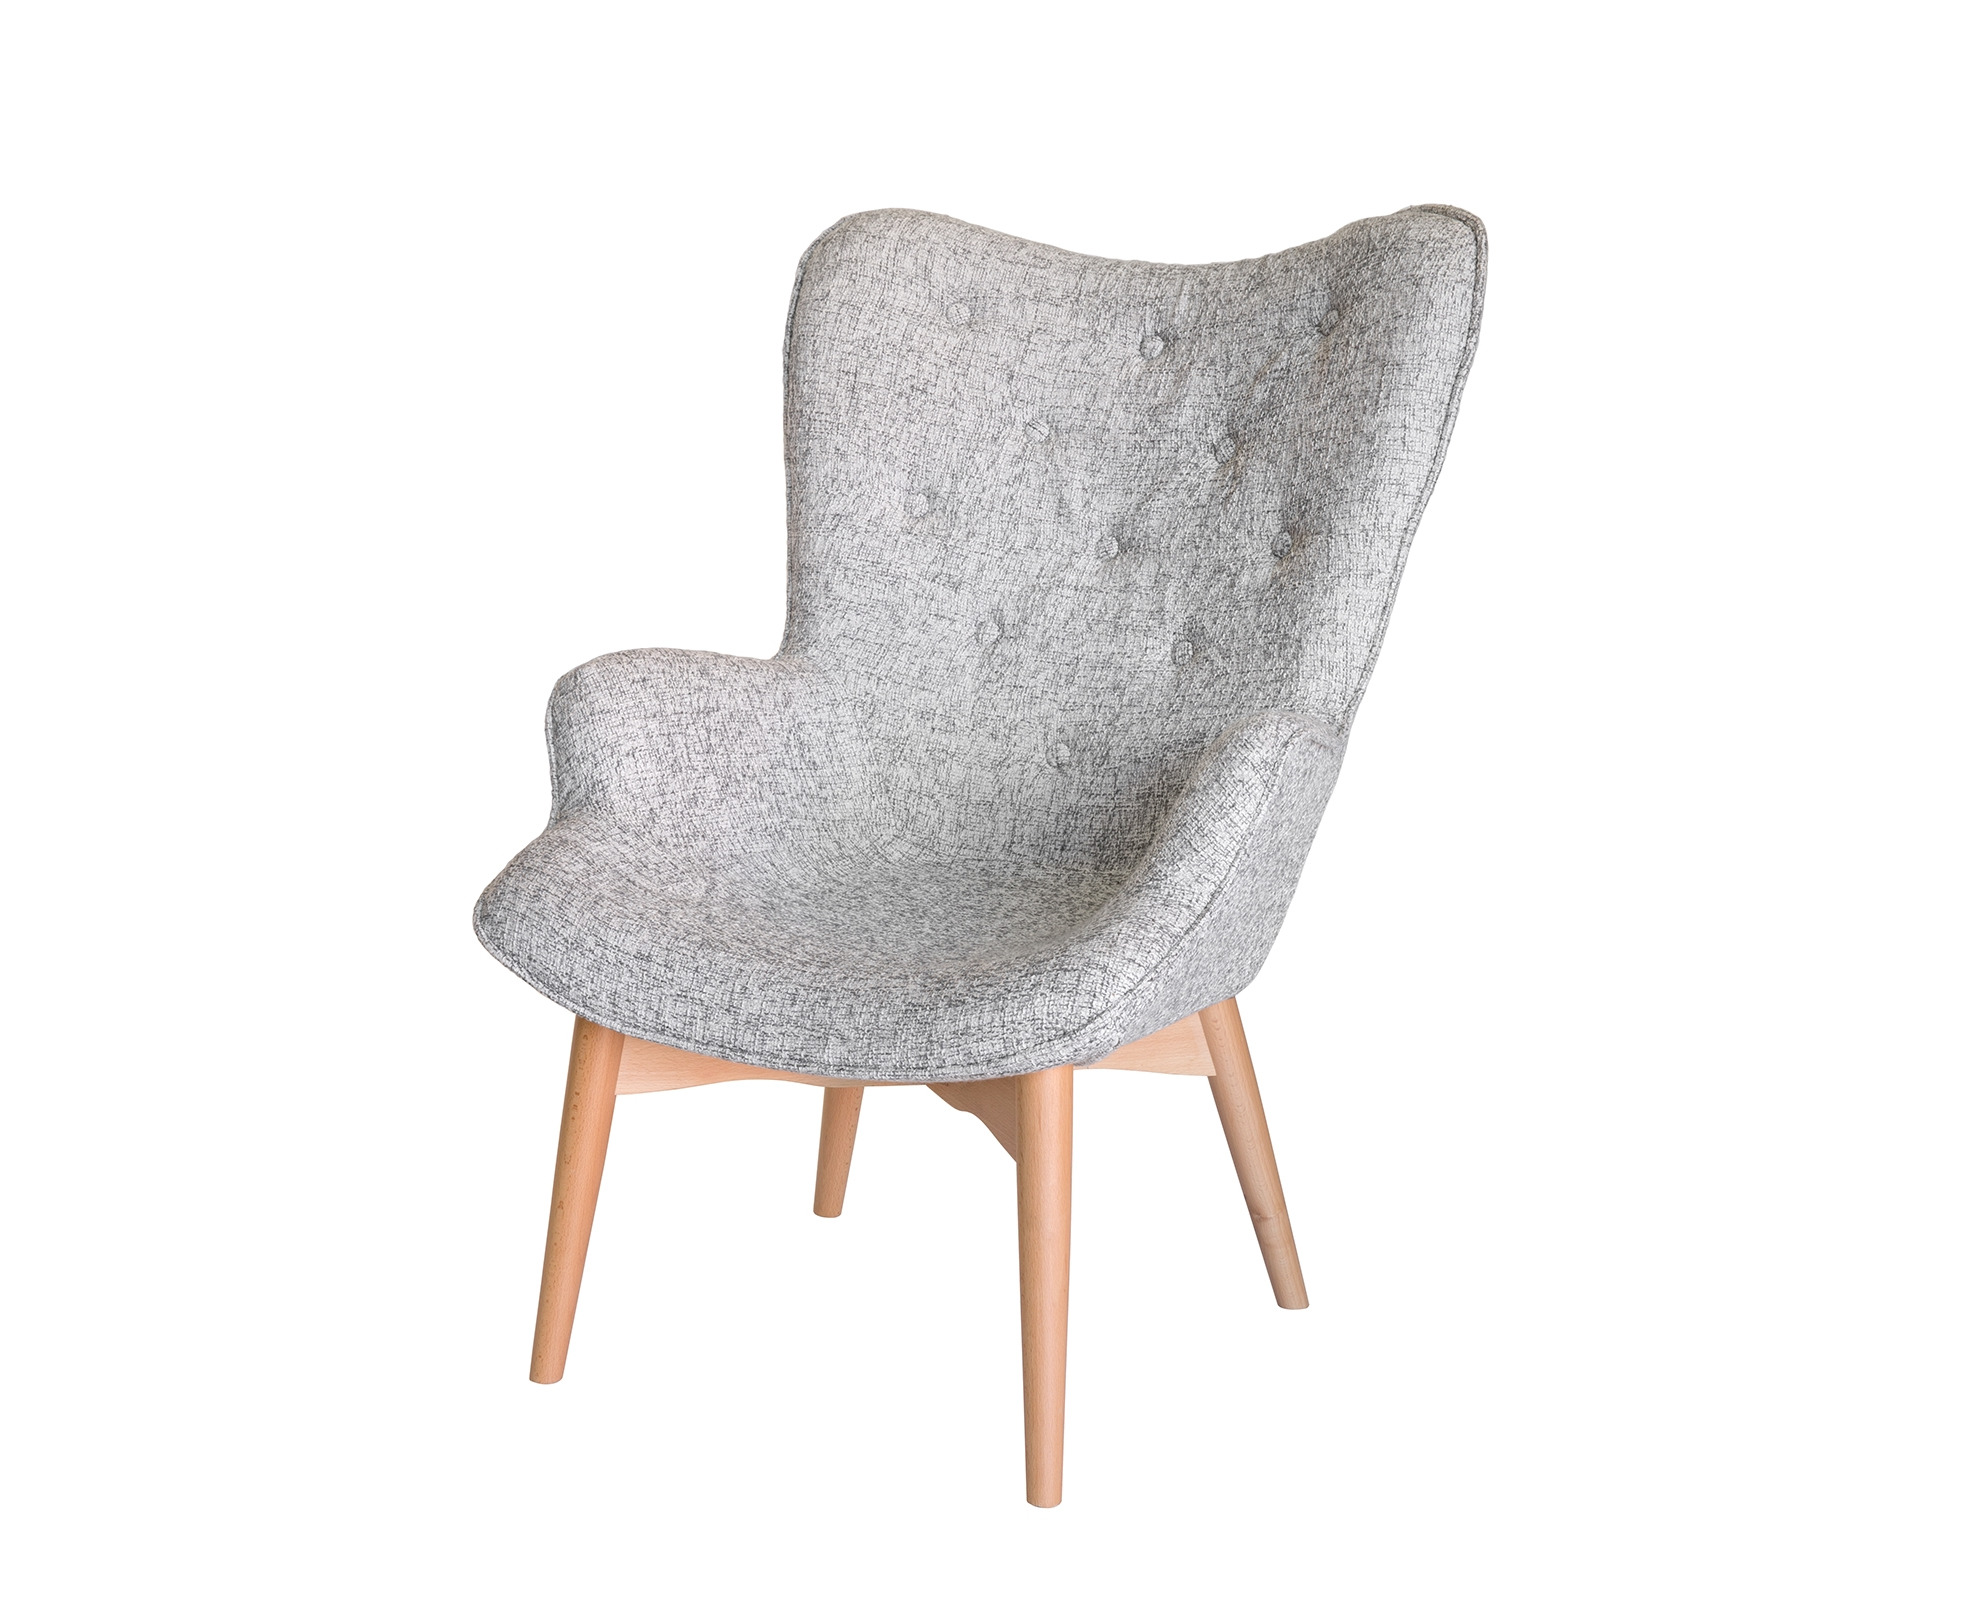 Awesome Replica Grant Featherston Contour Lounge Chair Fabric Natural Legs Textured Light Grey Machost Co Dining Chair Design Ideas Machostcouk